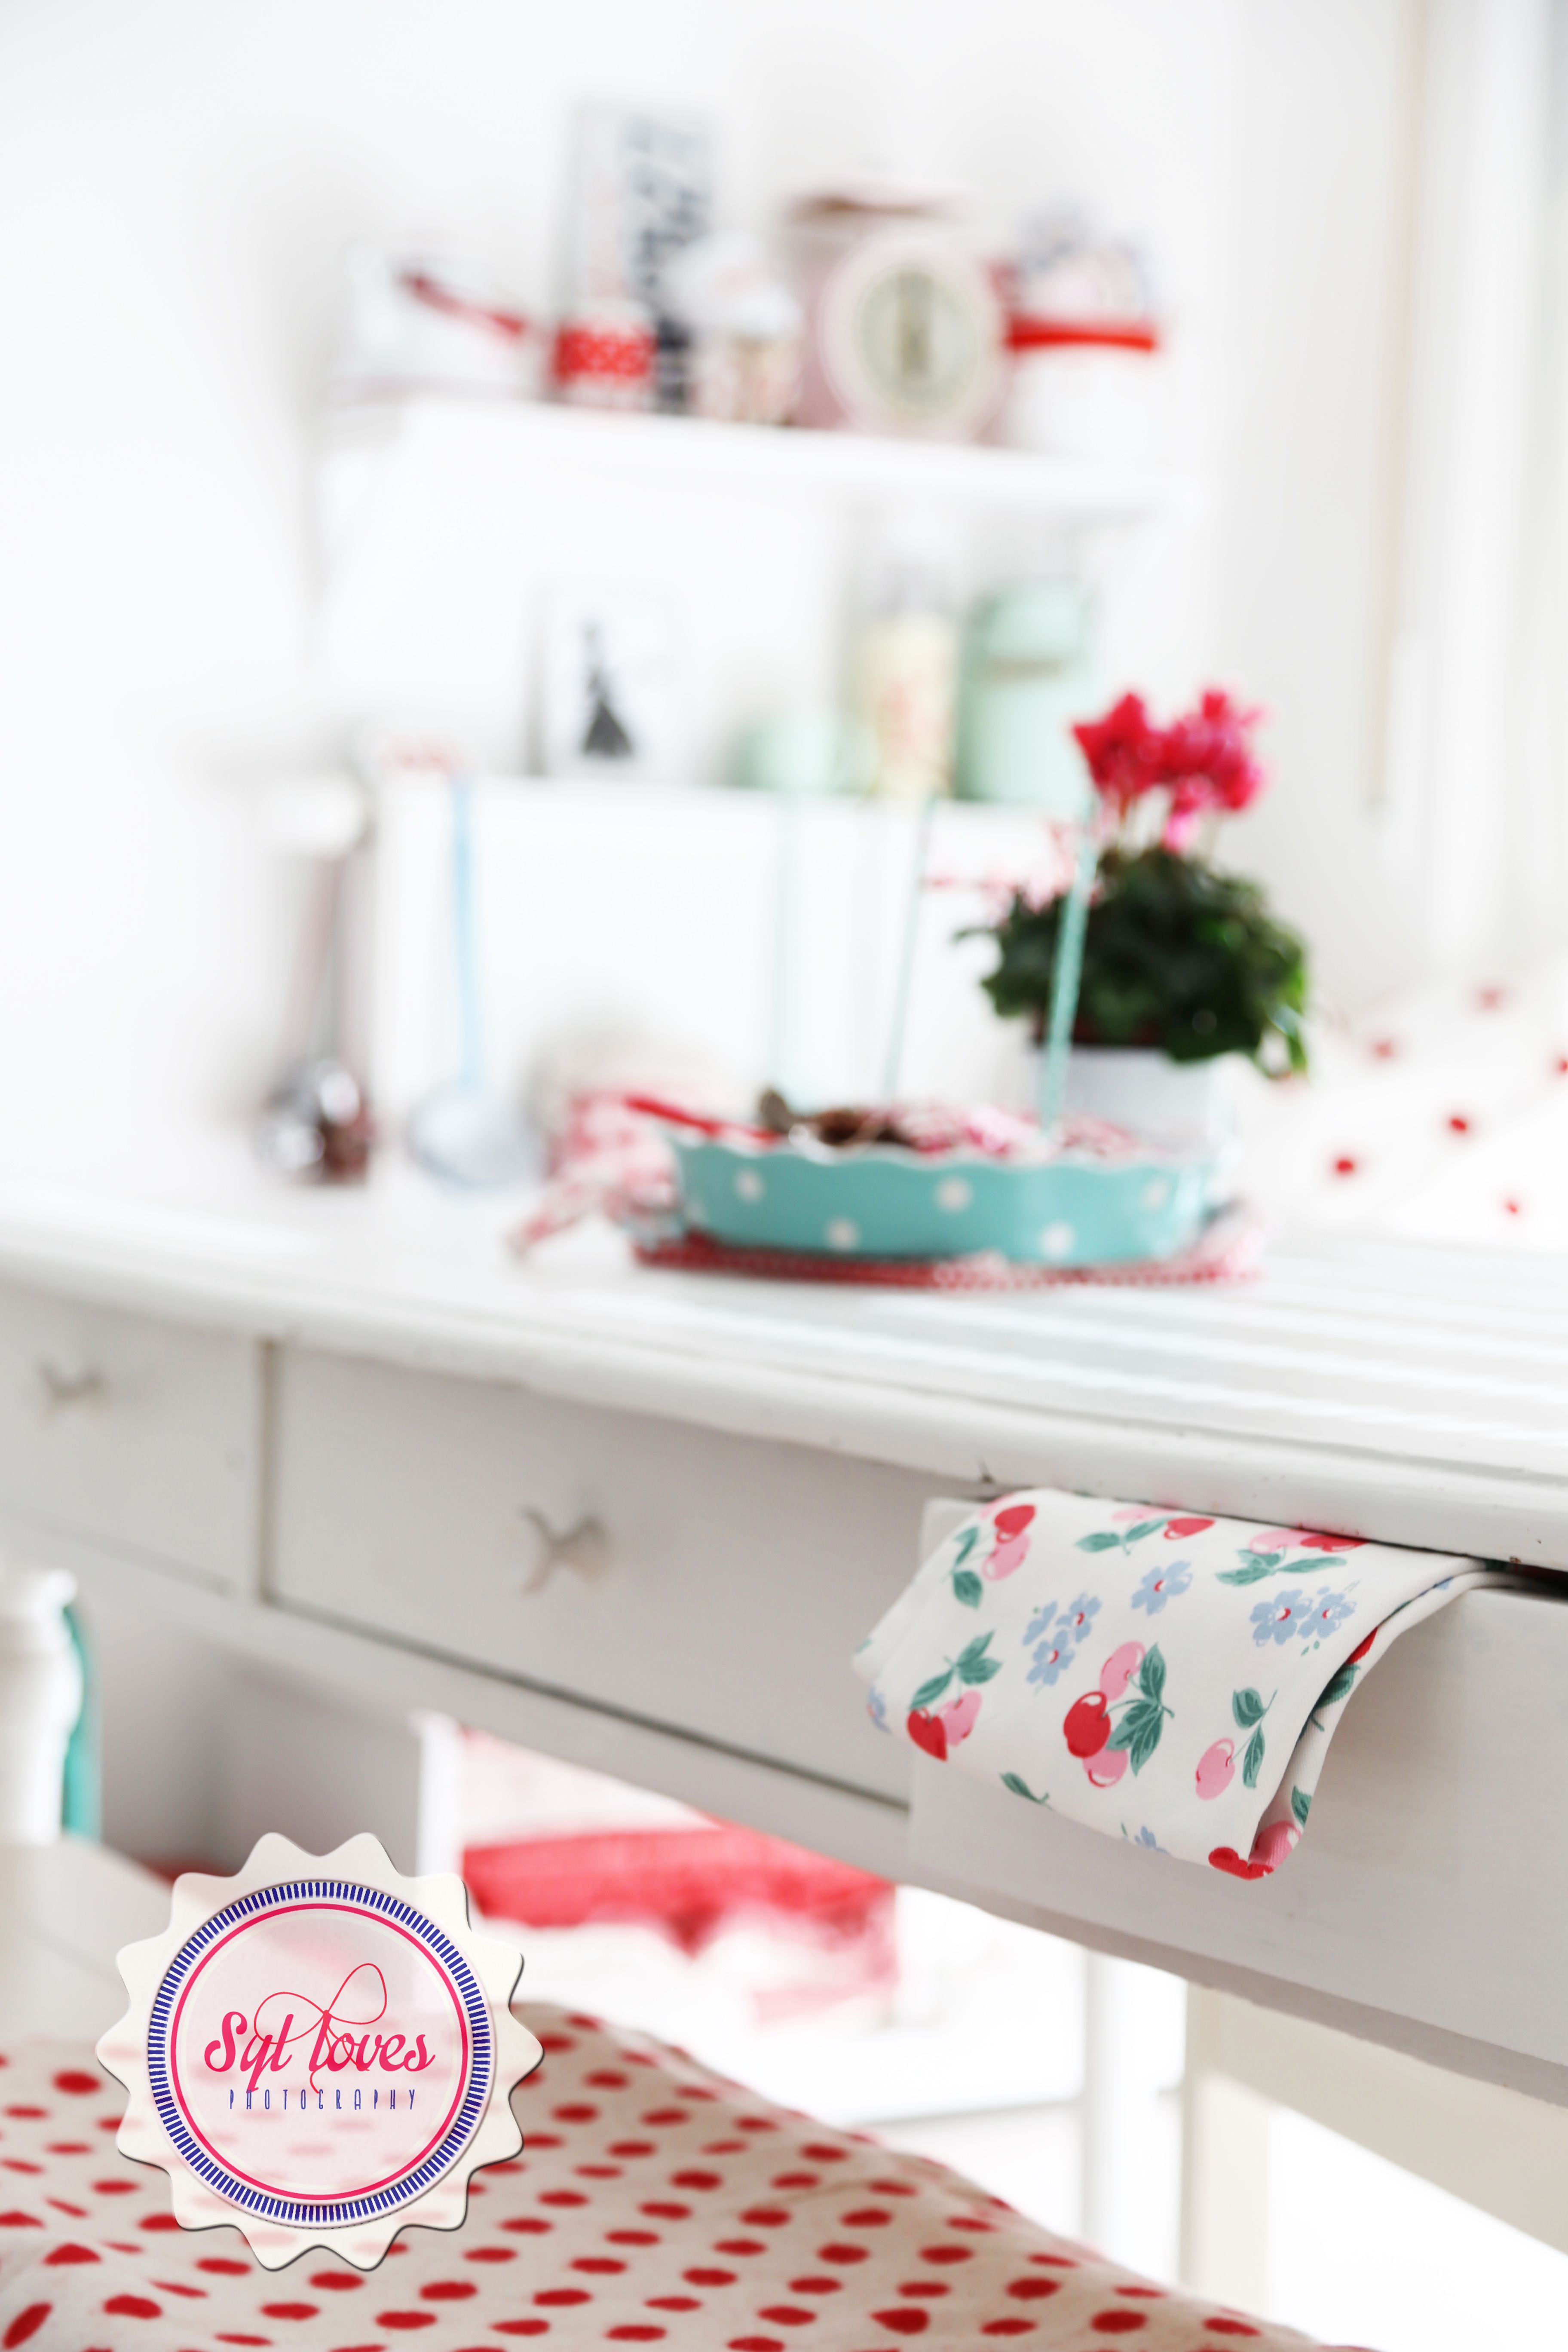 Syl loves, kitchen, GreenGate, pastel, red, white, vintage table ...